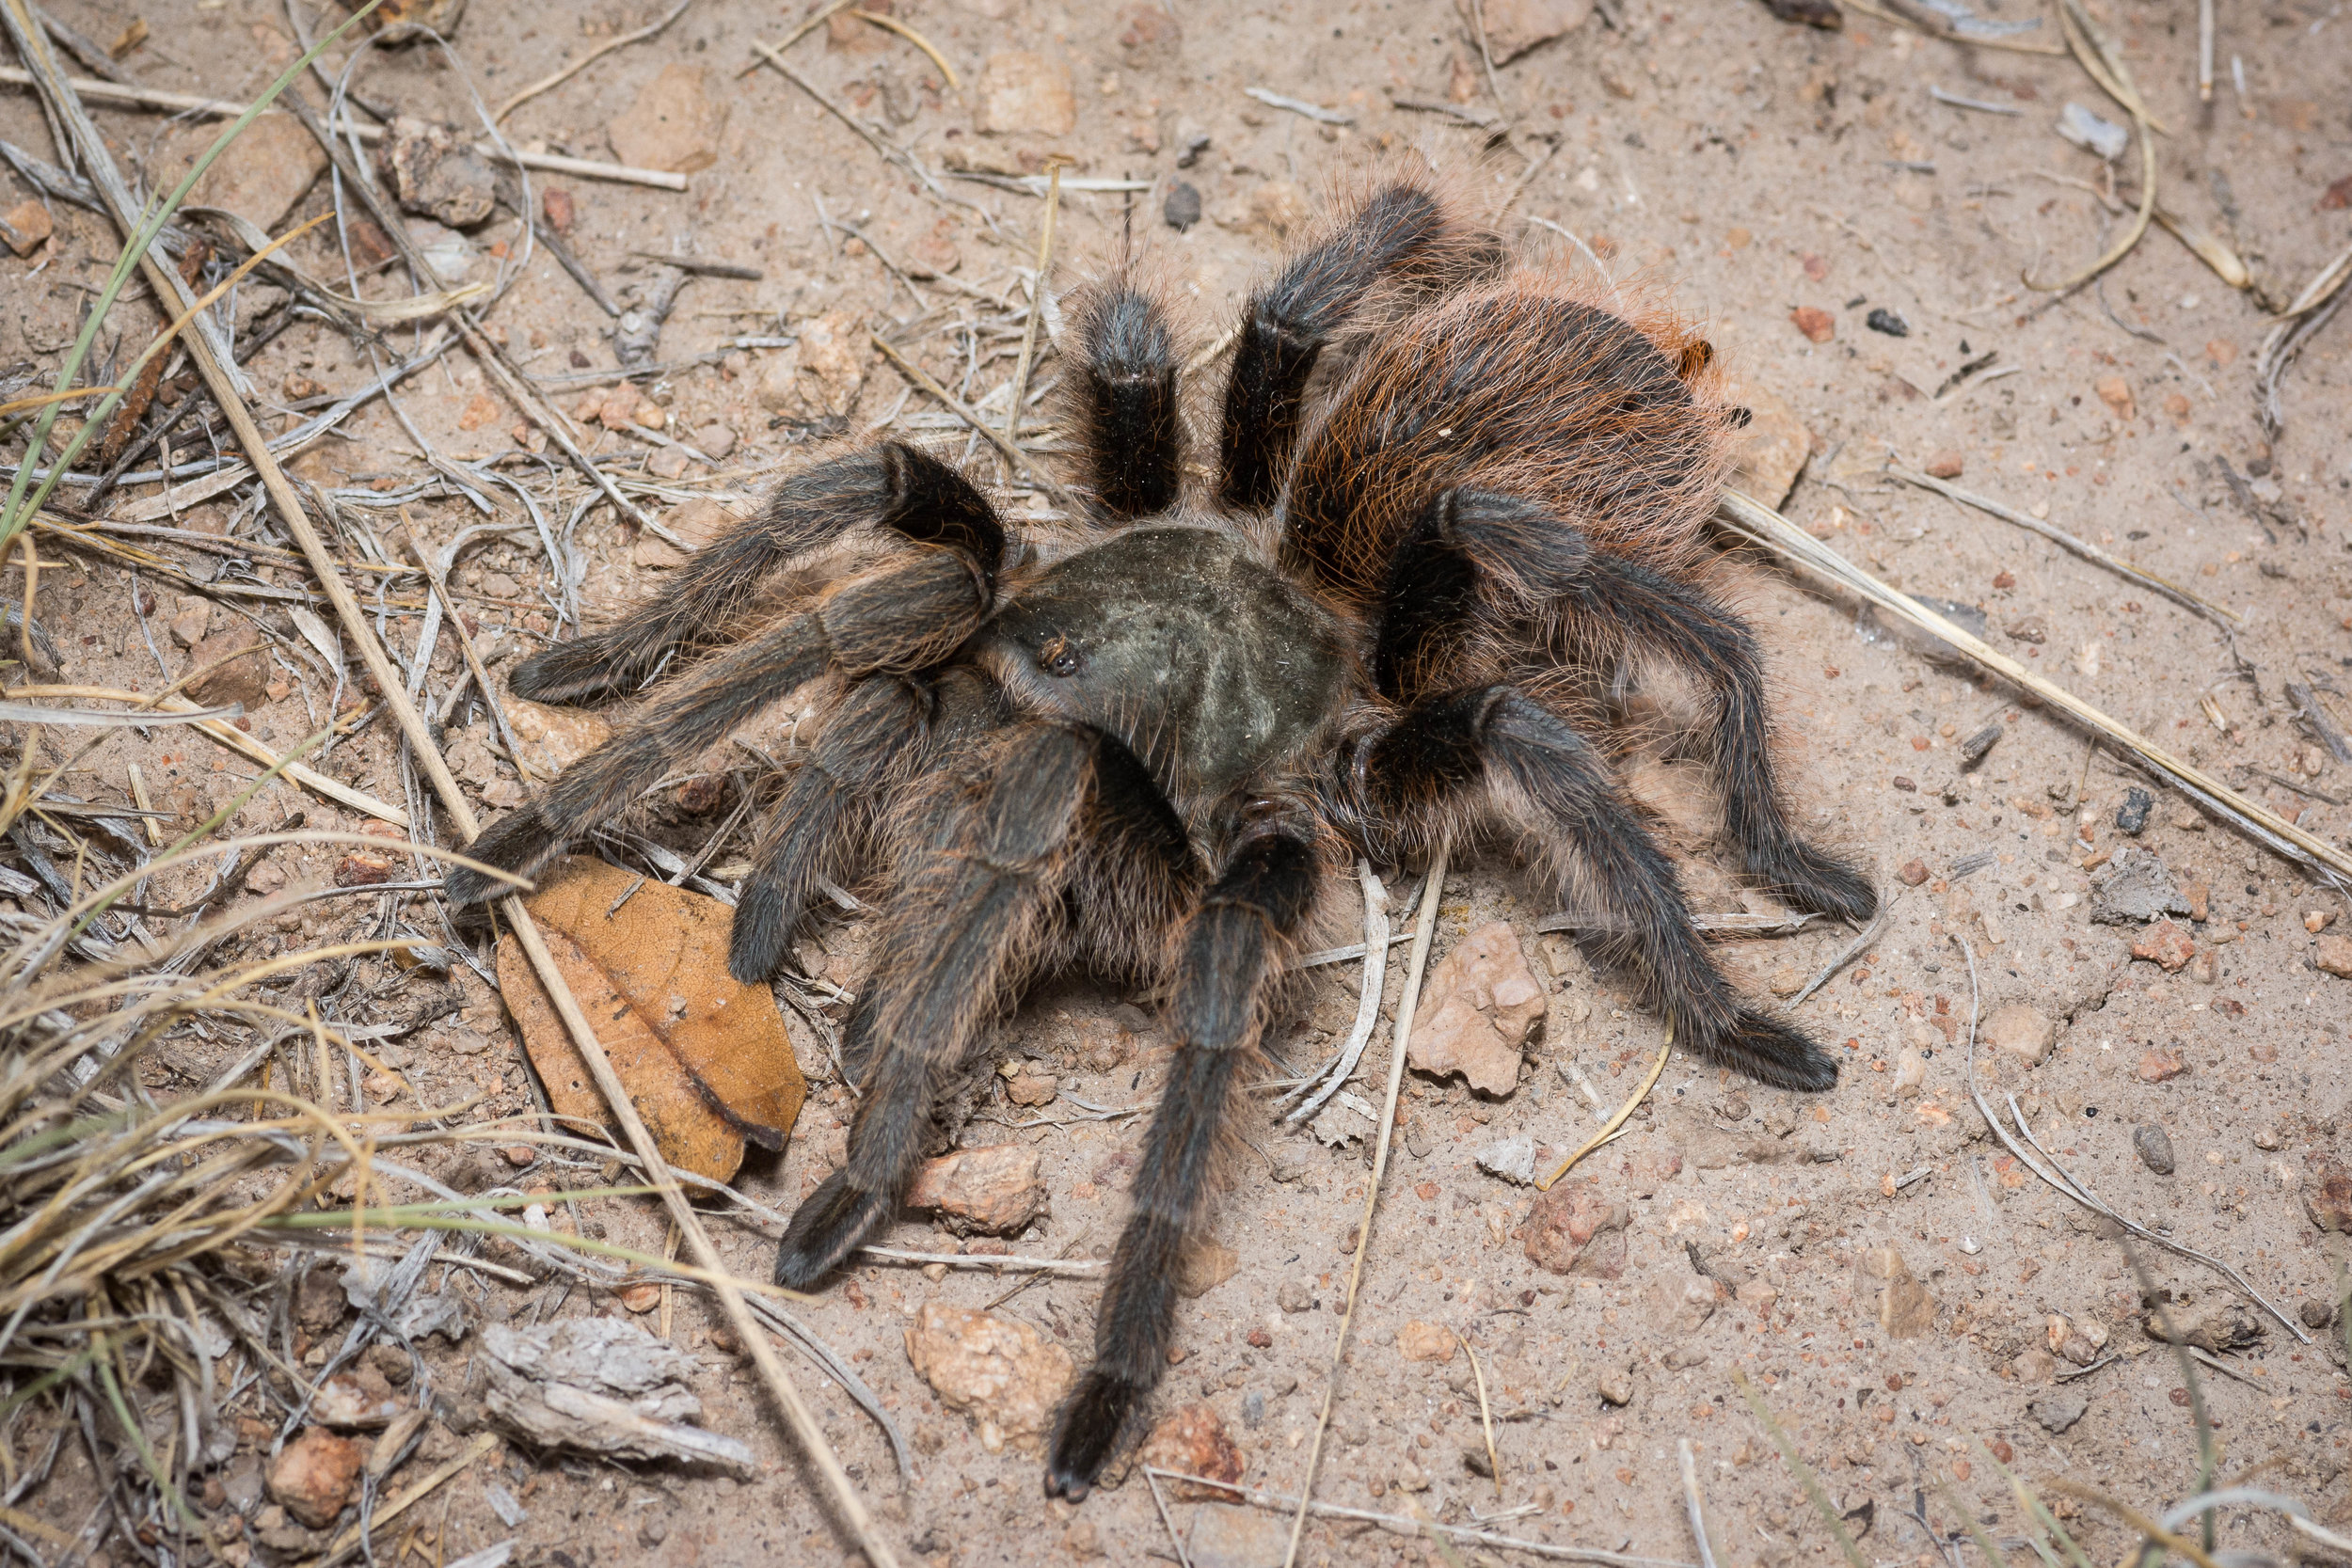 Aphonopelma peloncillo , Peloncillo Mountains, Hidalgo Co., New Mexico